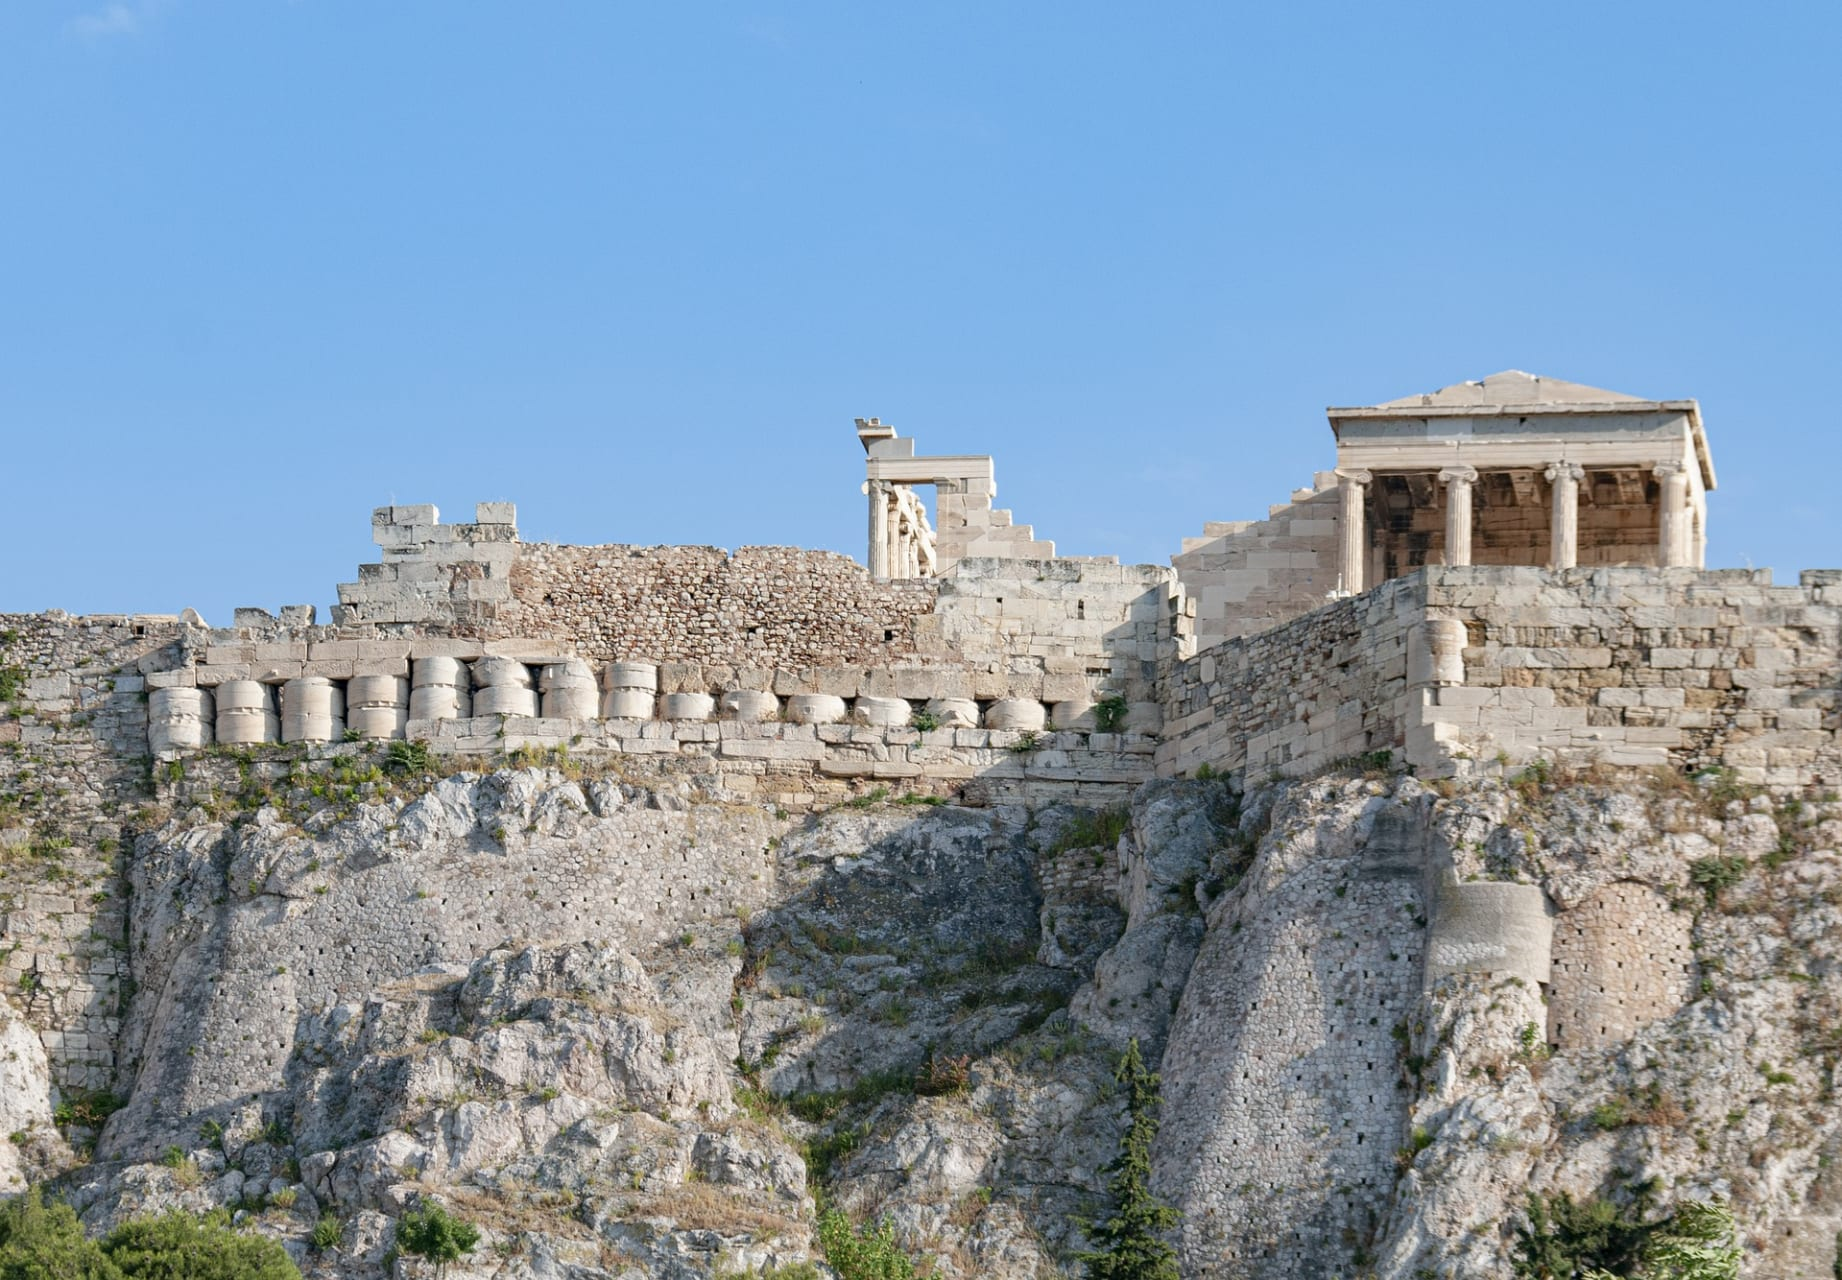 Athens - Classical Athens and its Golden Age – An experiment in culture